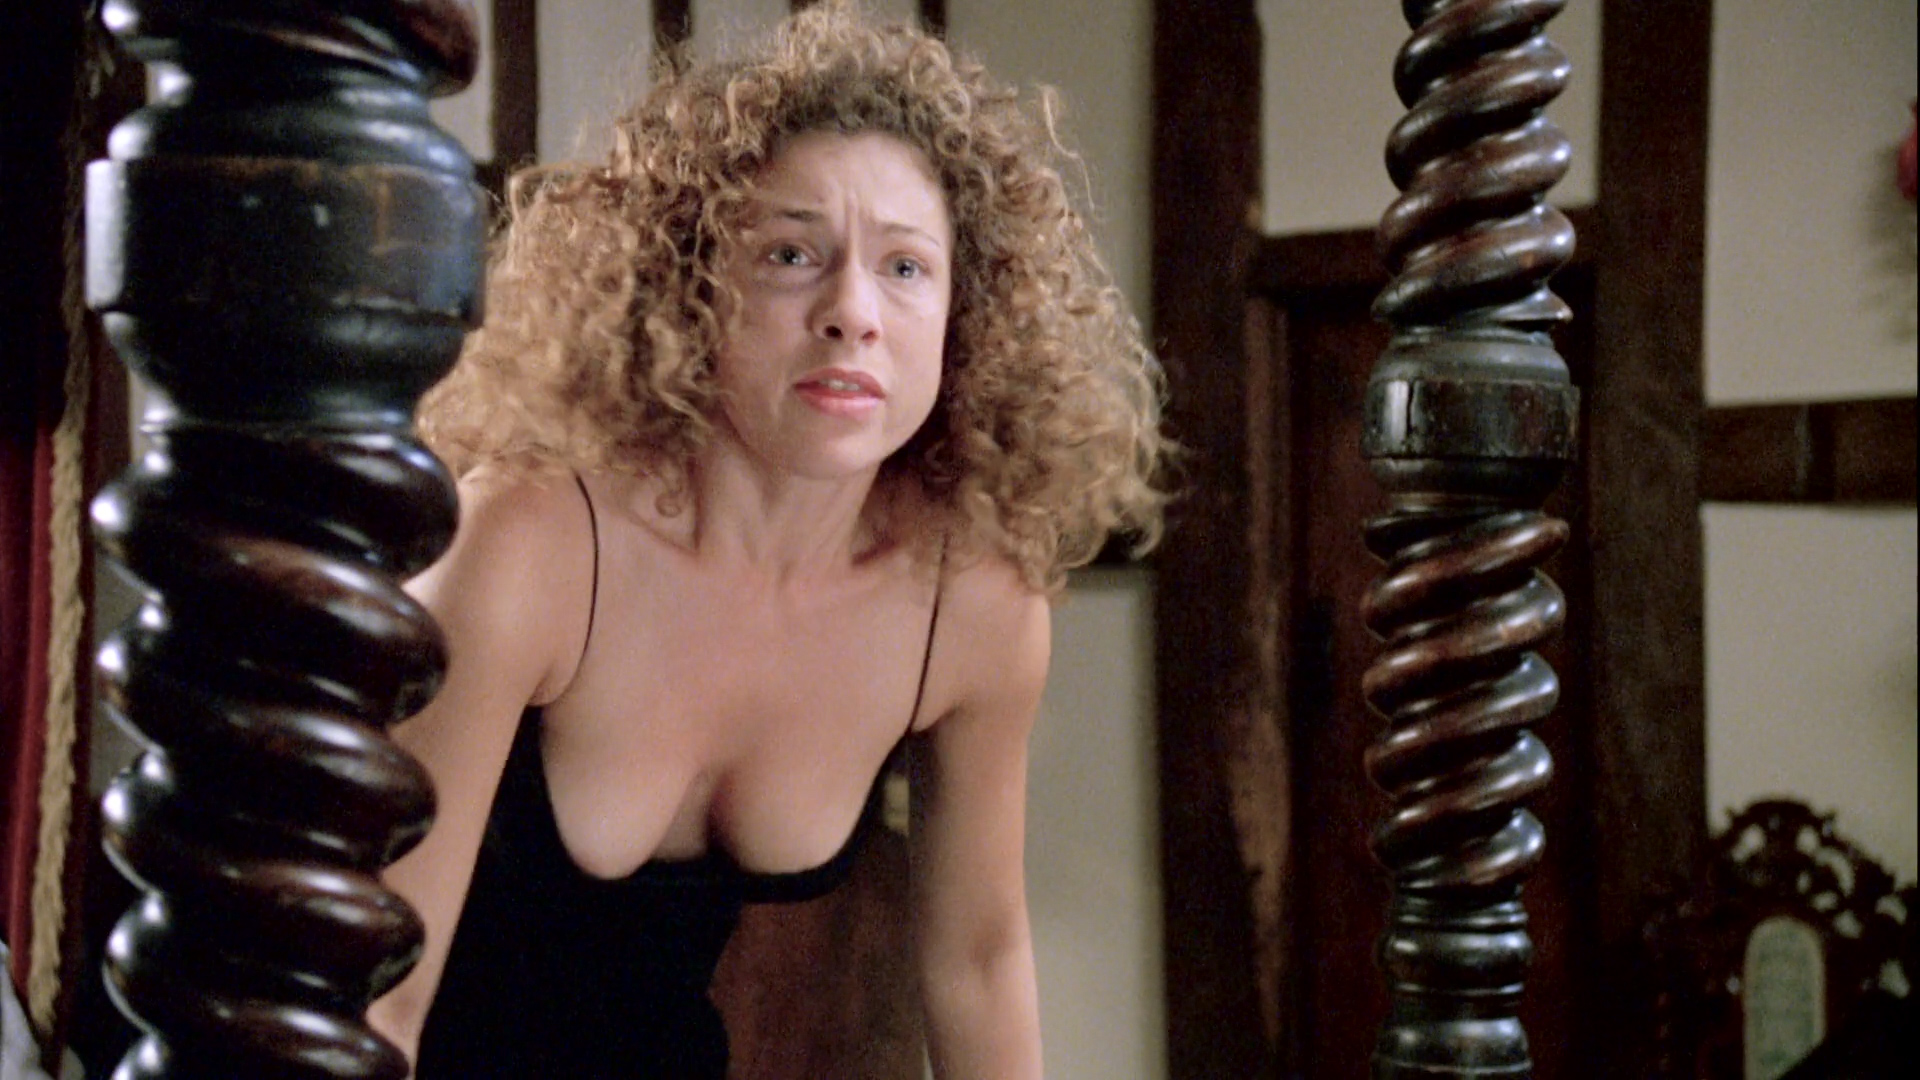 Alex kingston naked gladly